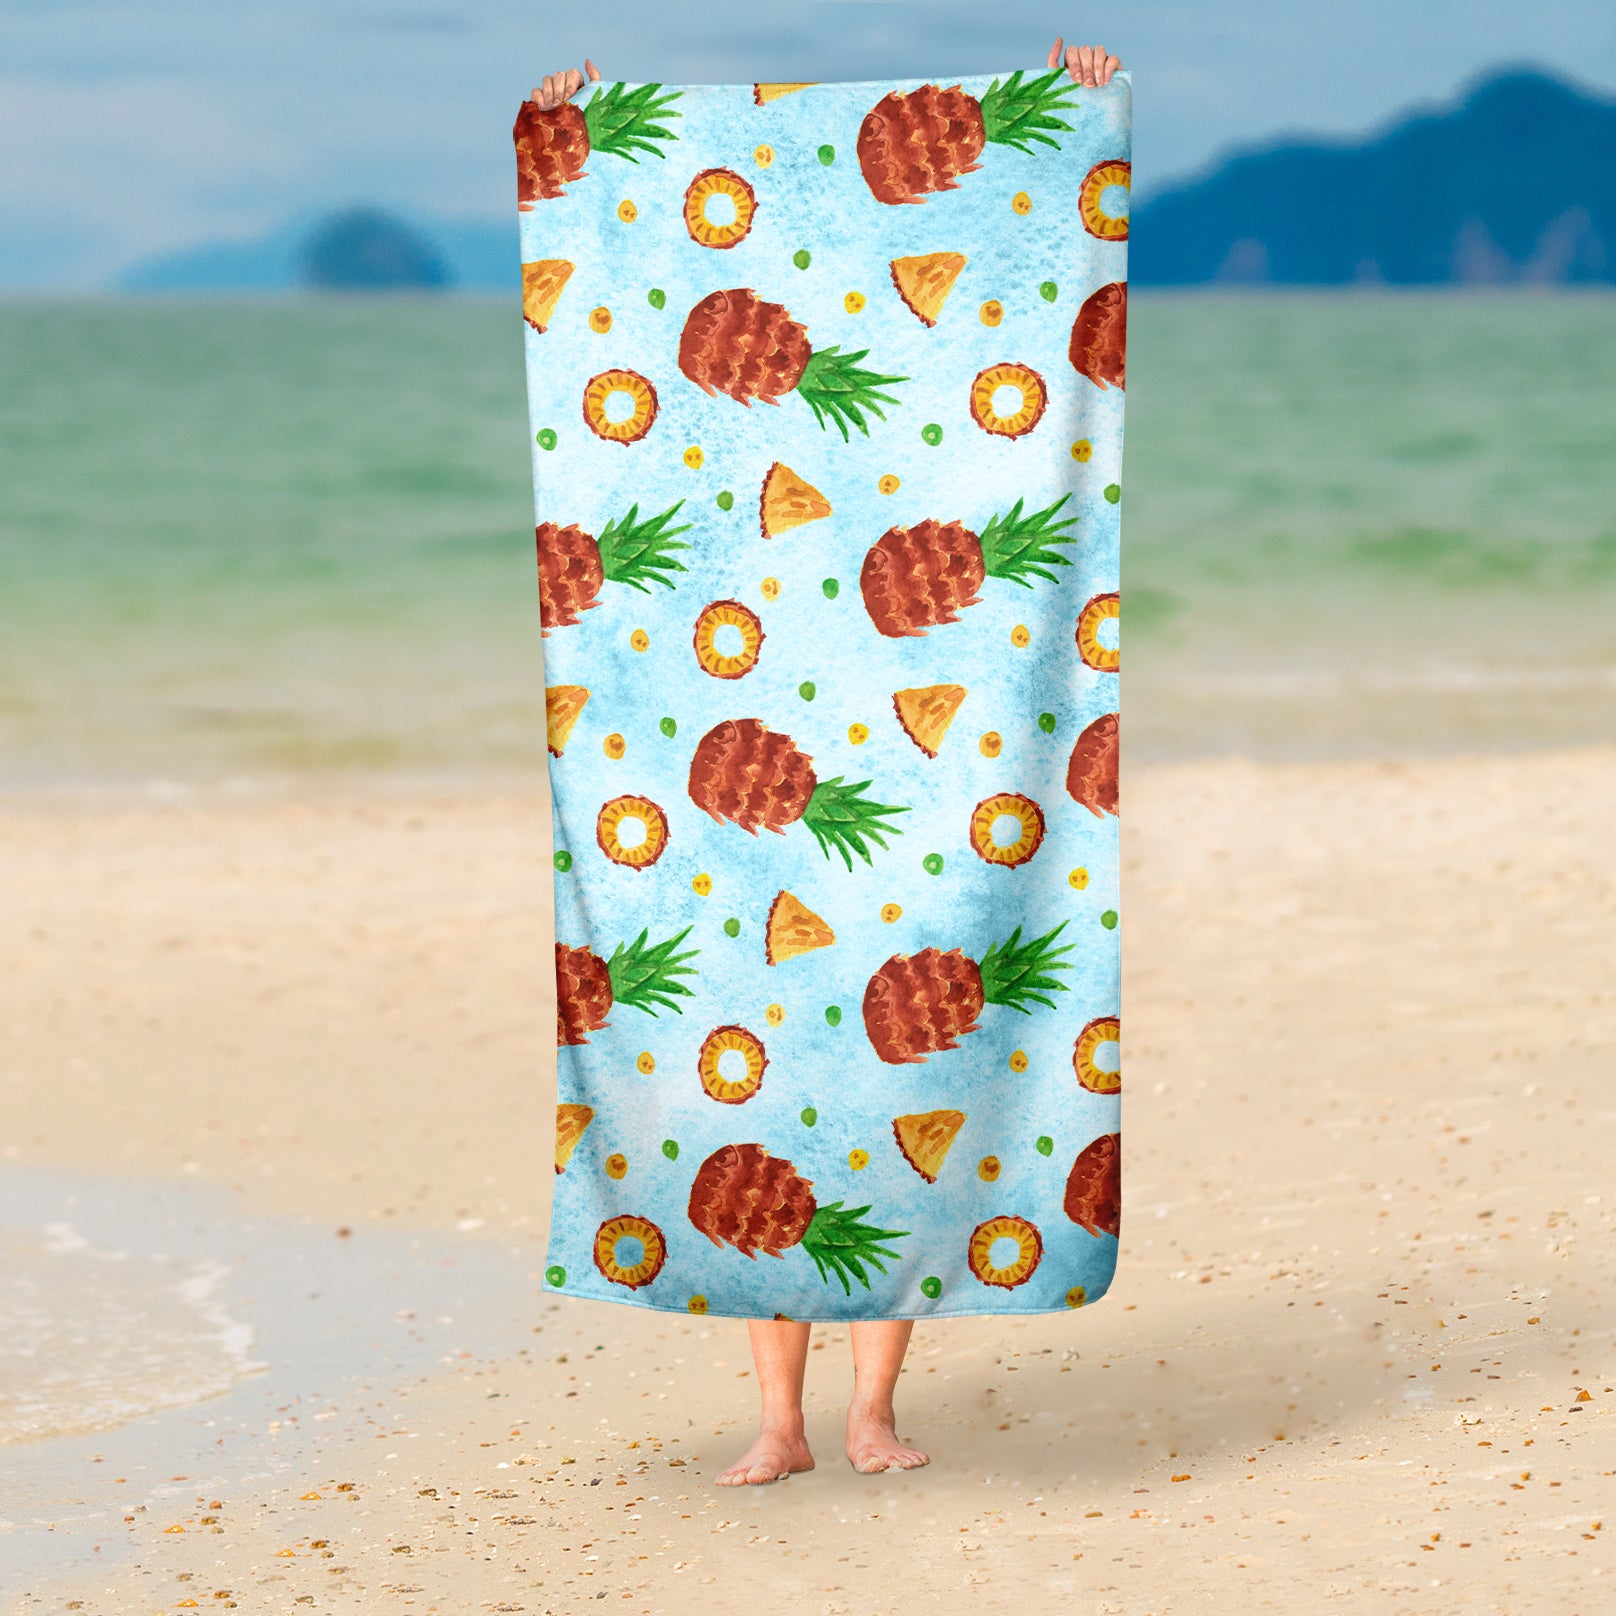 Blue Tropical Beach Towel - Watercolor Beach Towel | Brandless Artist